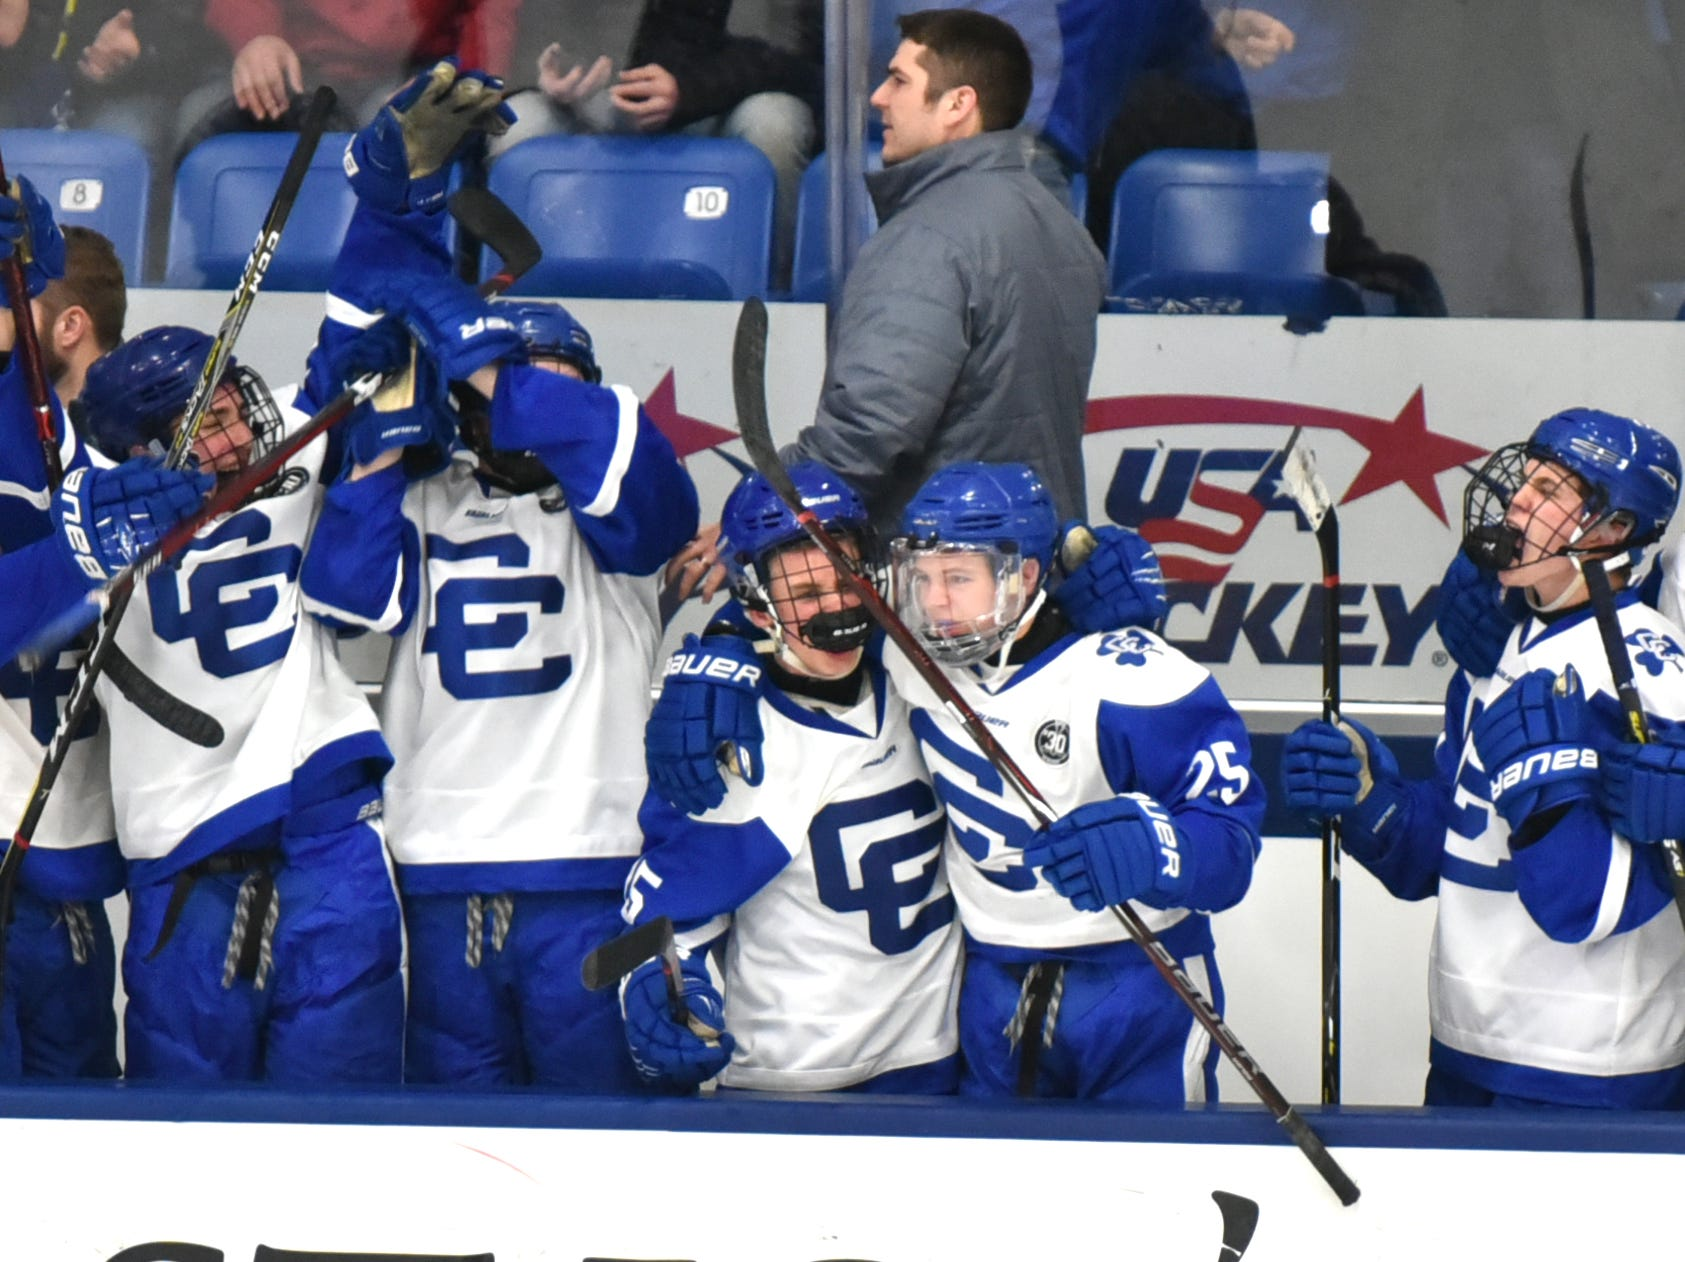 After their on-ice teammates added an empty-netter, the CC bench begins to celebrate late in Saturday's game.